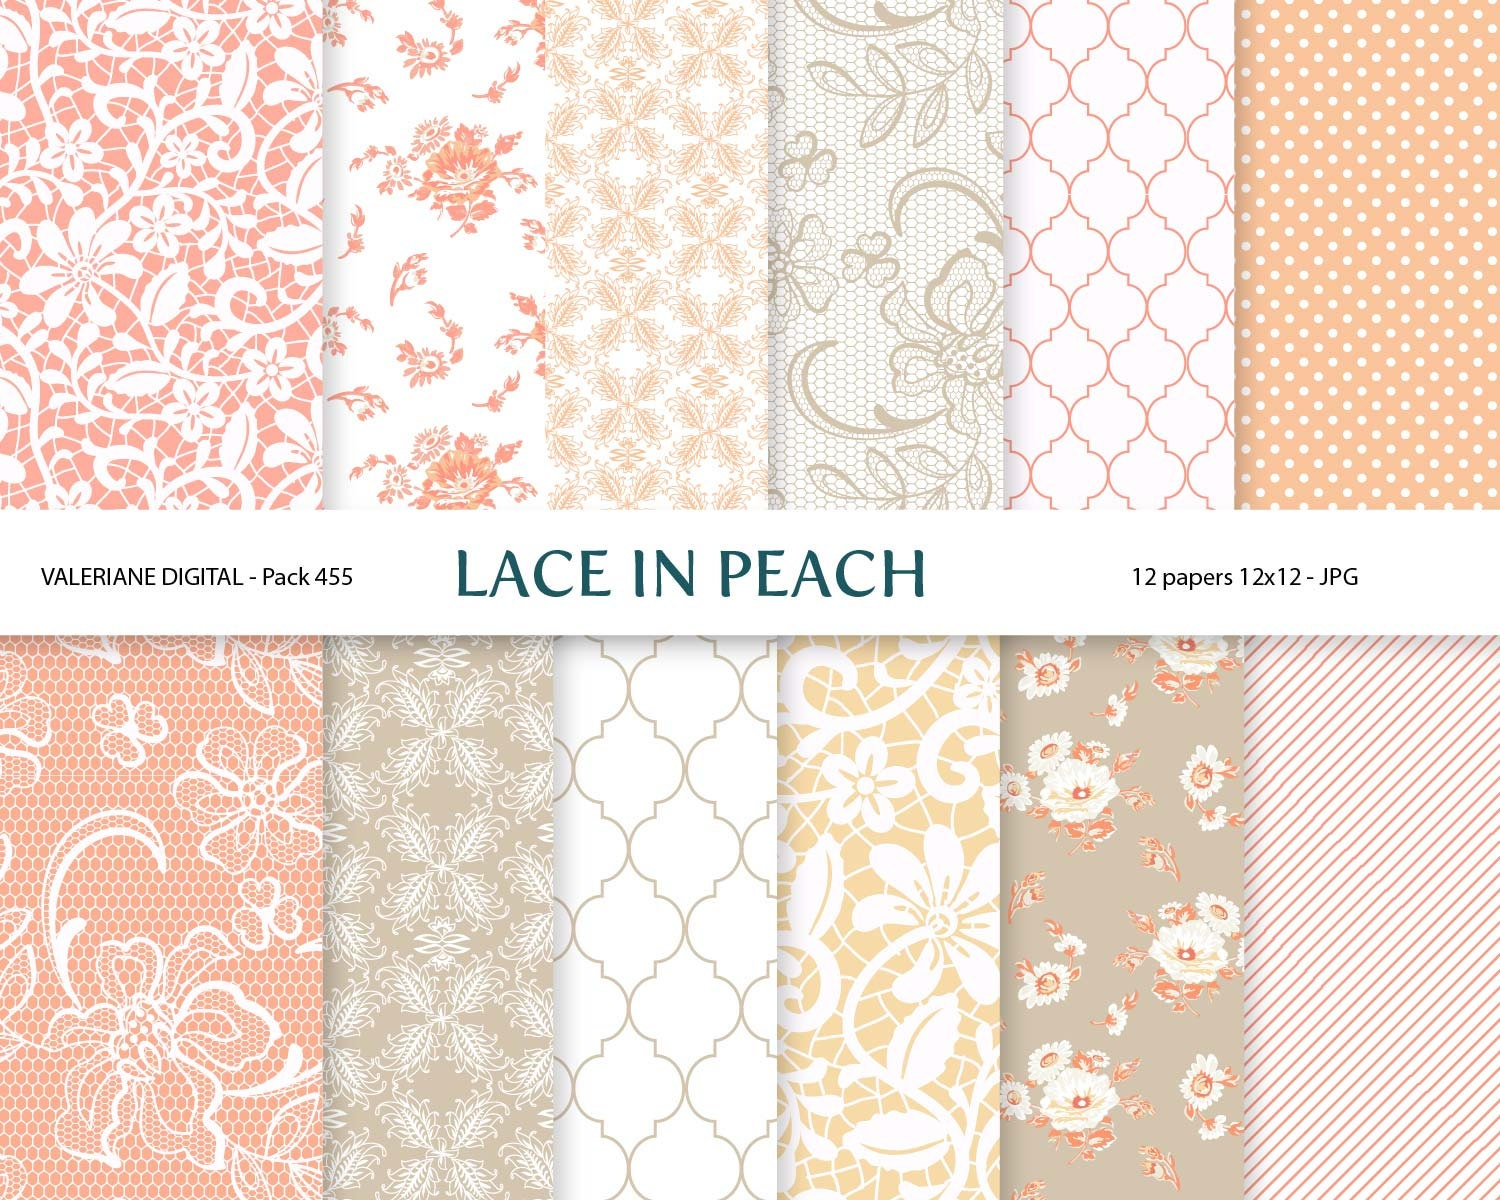 12x12 wedding scrapbook paper - Peach Cream And Beige Rose Digital Wedding Paper Scrapbook Paper 12 Jpg 12x12 Instant Download Pack 456